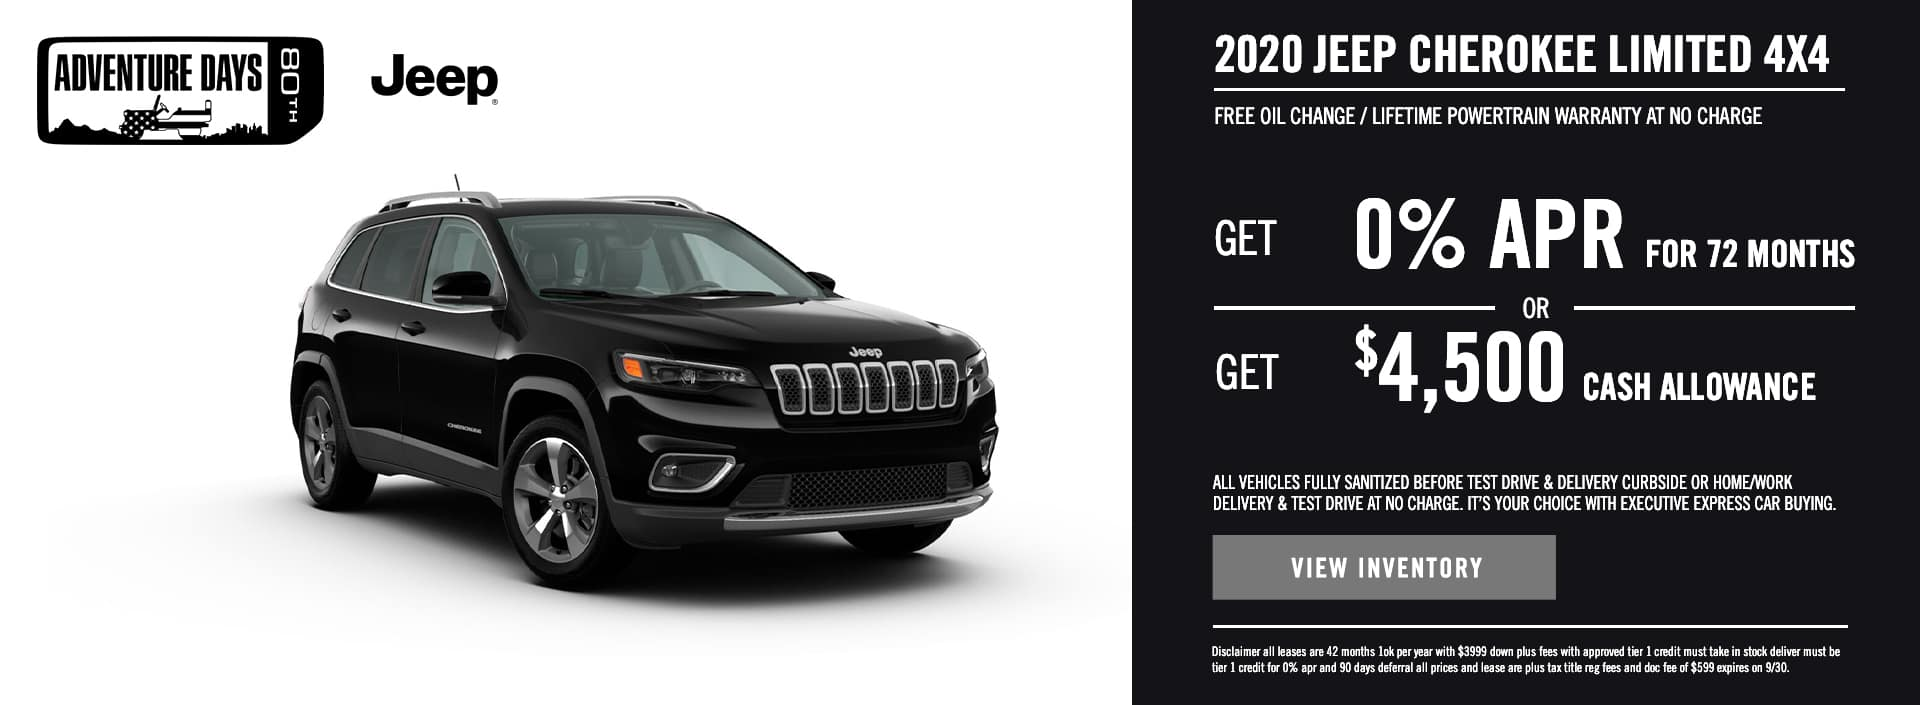 EAG_Jeep_2020 Jeep Cherokee Limited 4×4 (1)